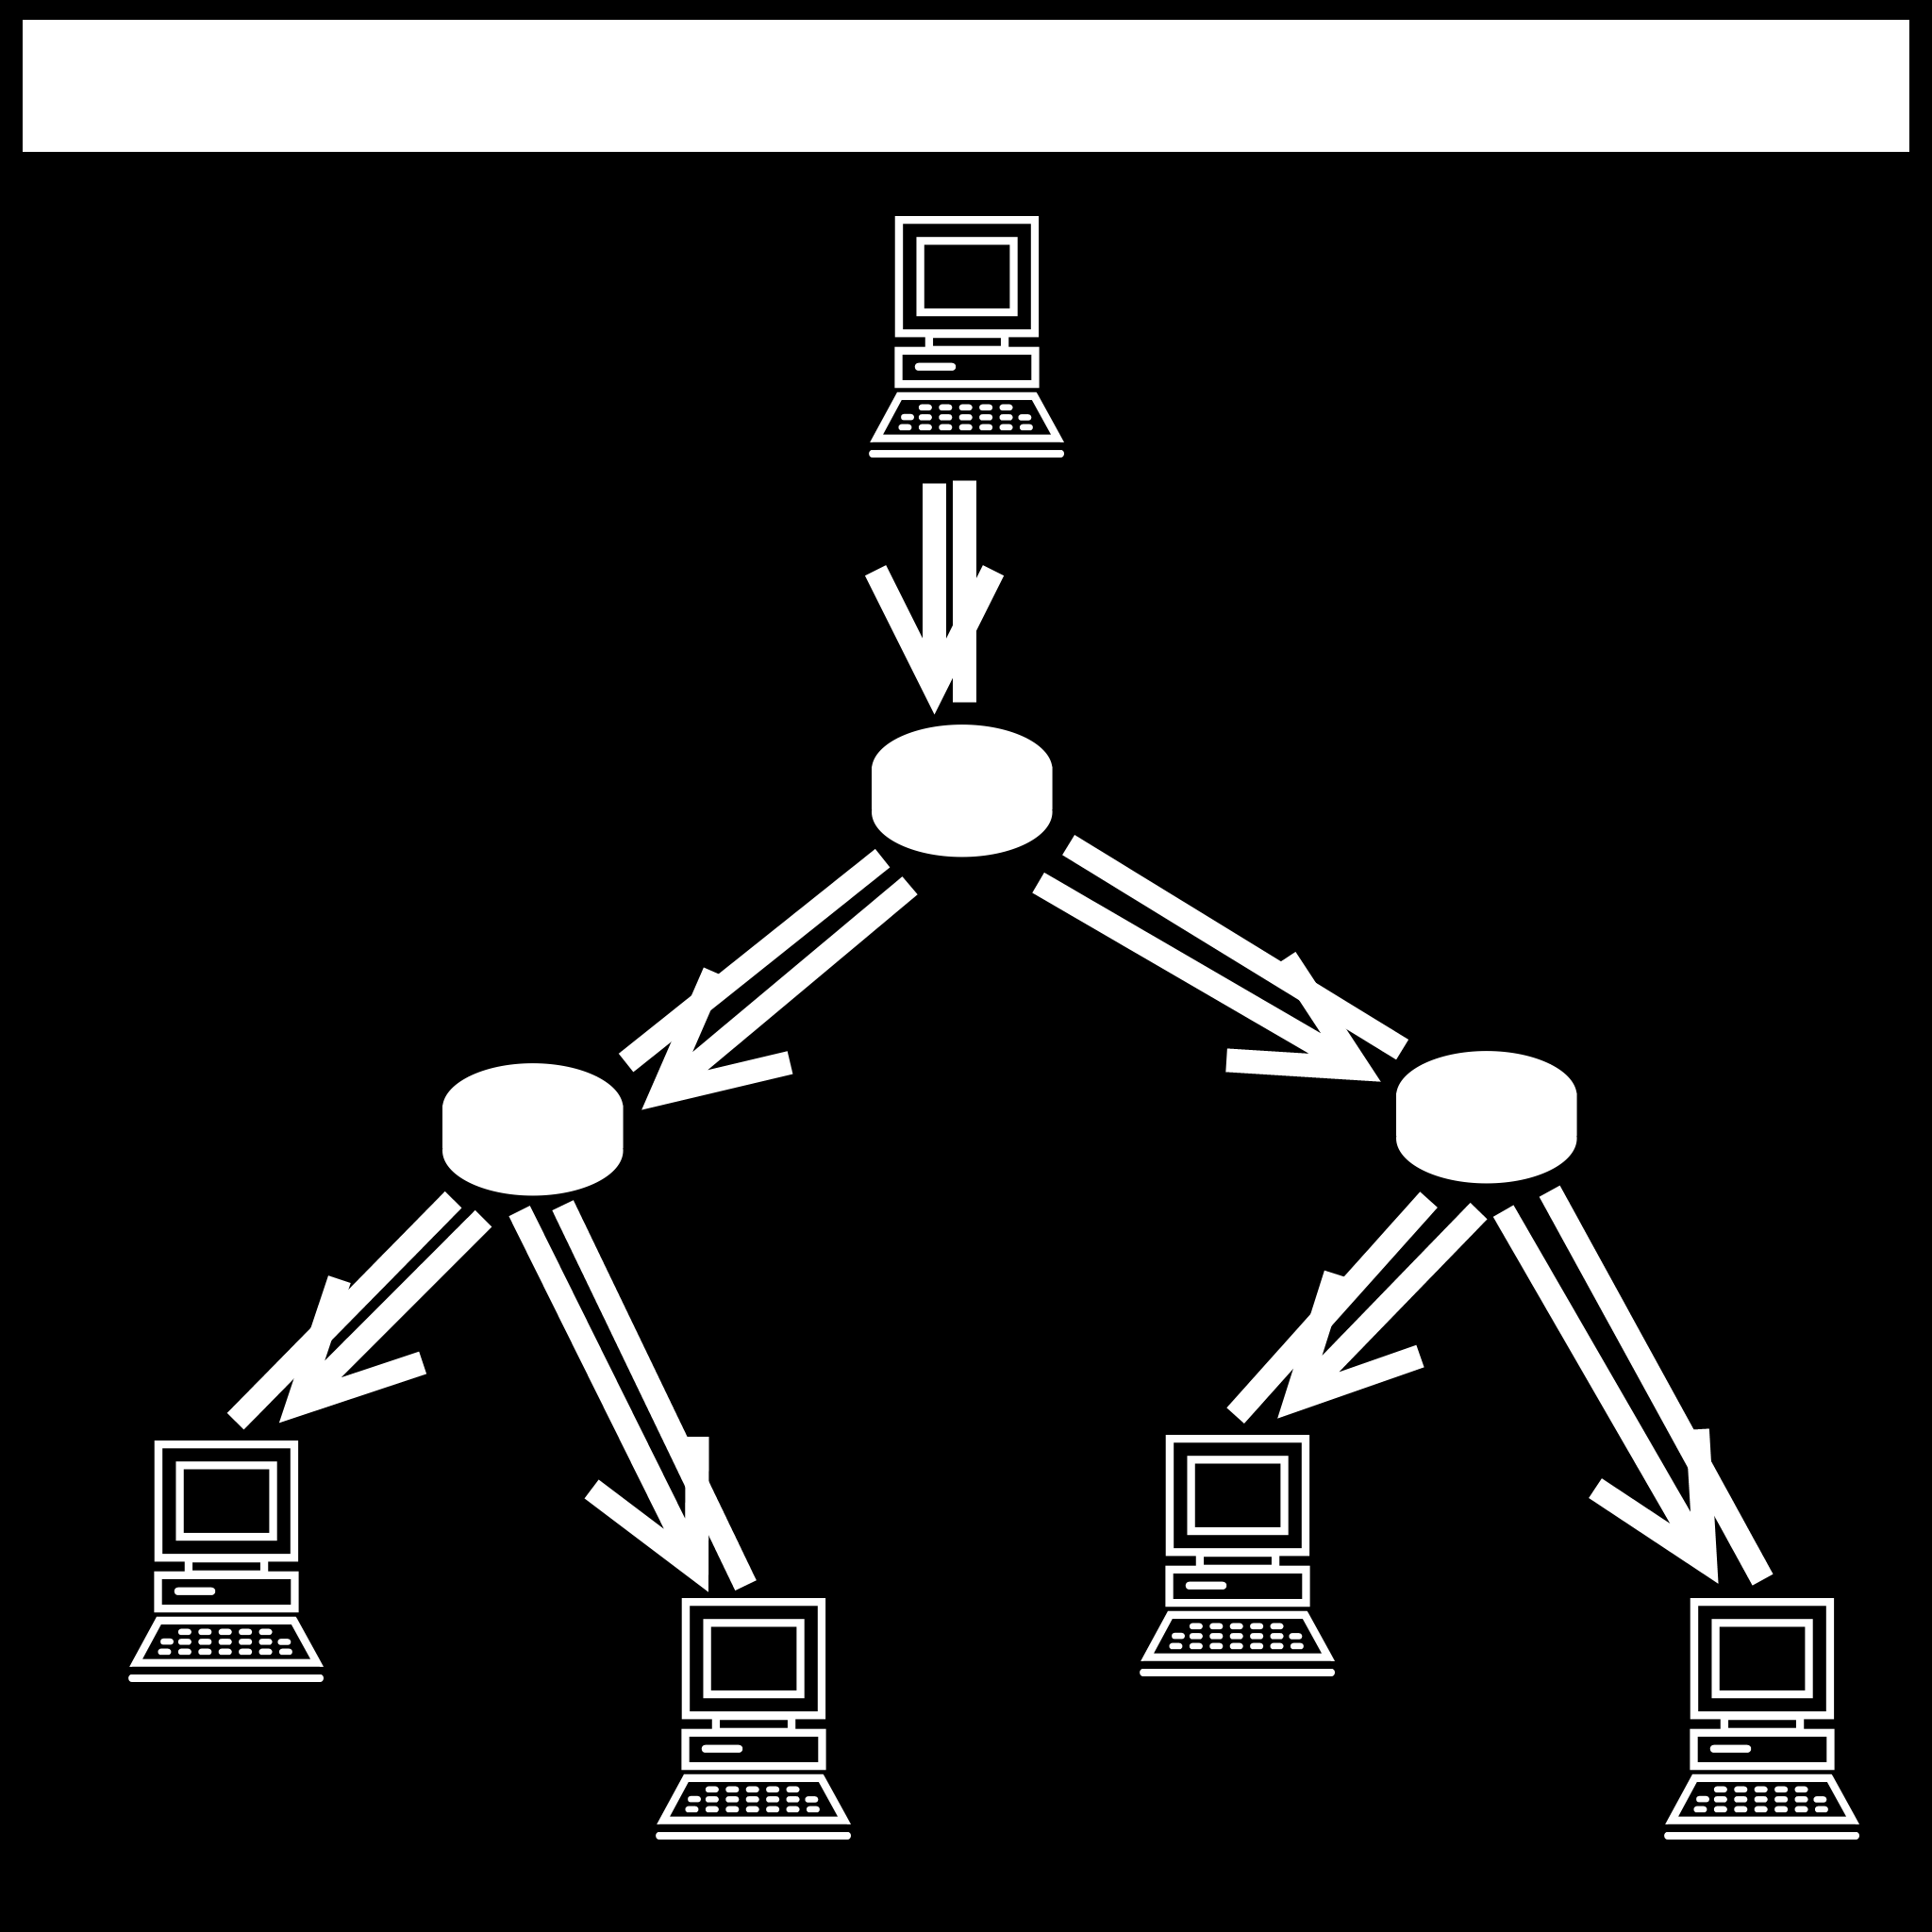 Figure 1.2: Multicast use of network resources. The intermediate routers handle duplicating the data so that it reaches all of the recipients.